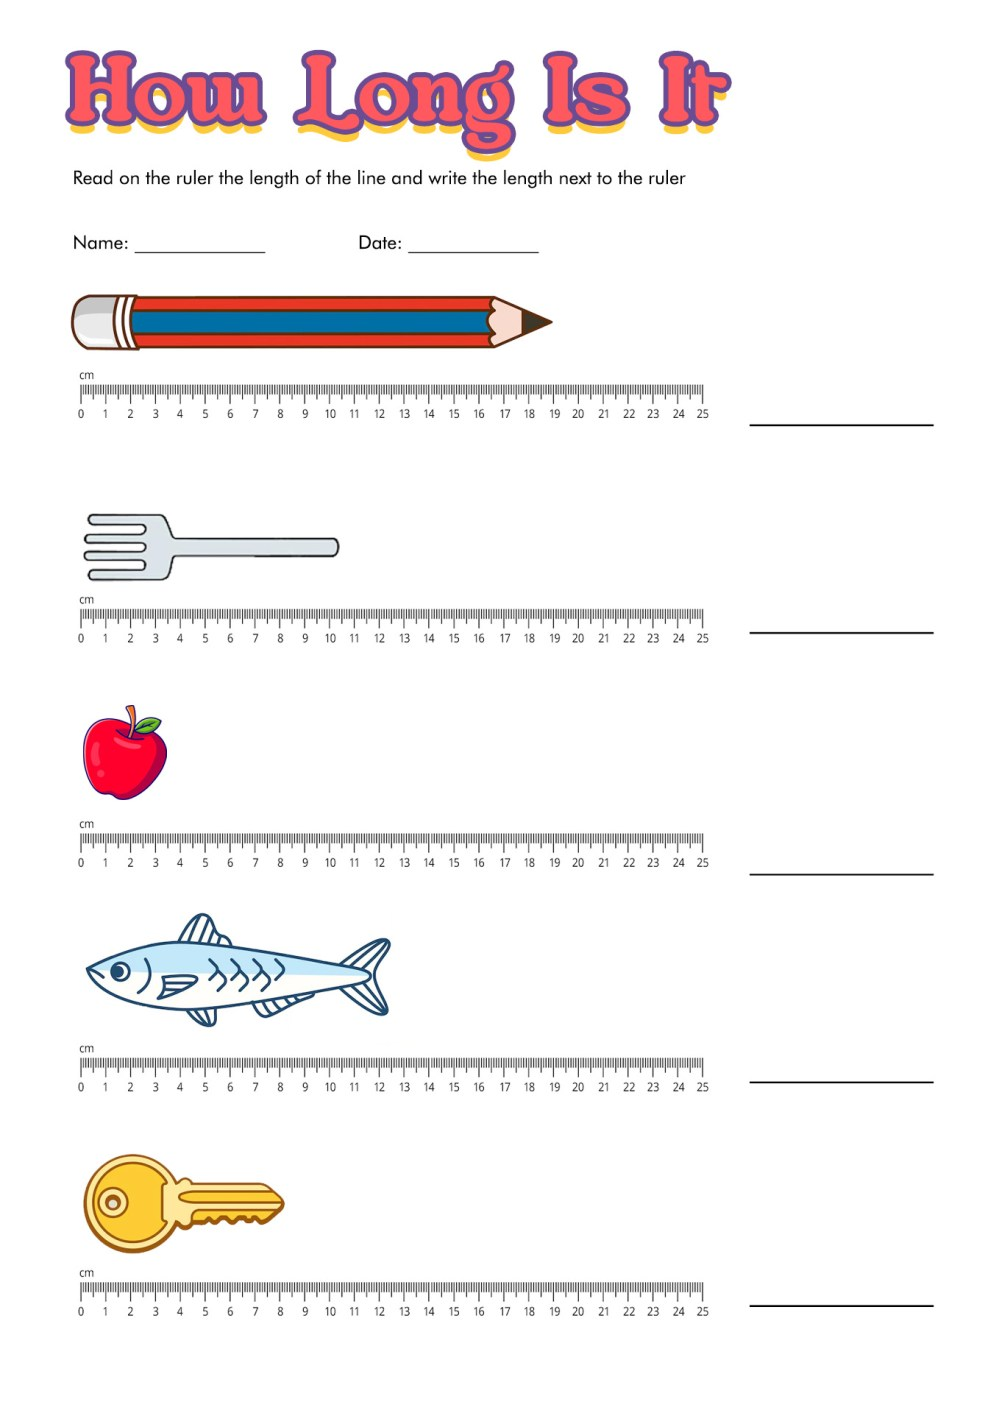 medium resolution of Measurement Worksheet With Ruler   Printable Worksheets and Activities for  Teachers